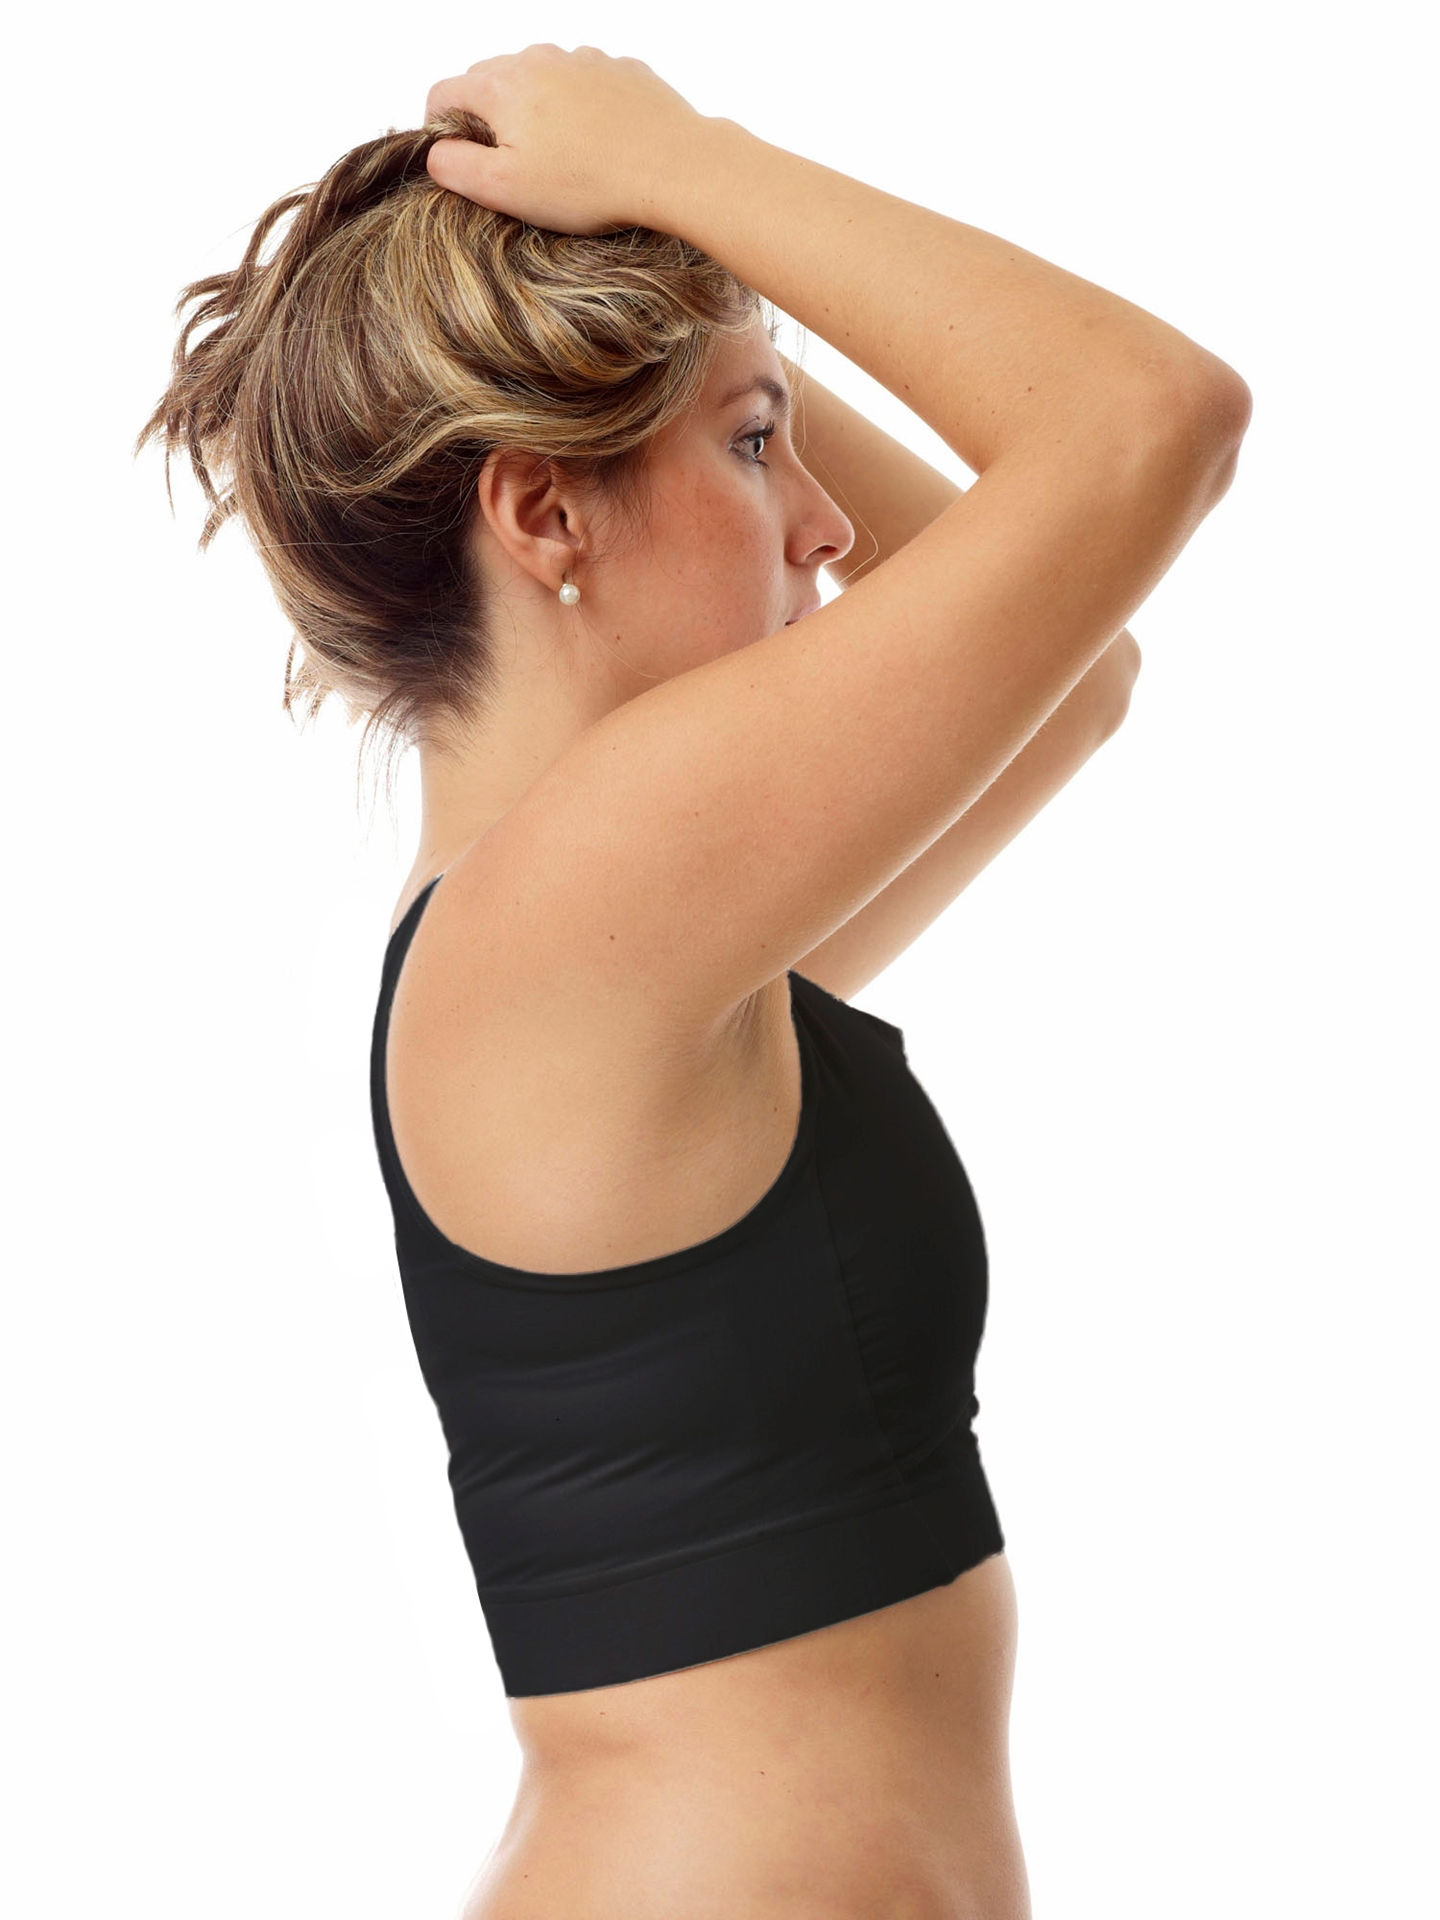 The support and control you need for your active lifestyle is available in the Underworks compression sports bra